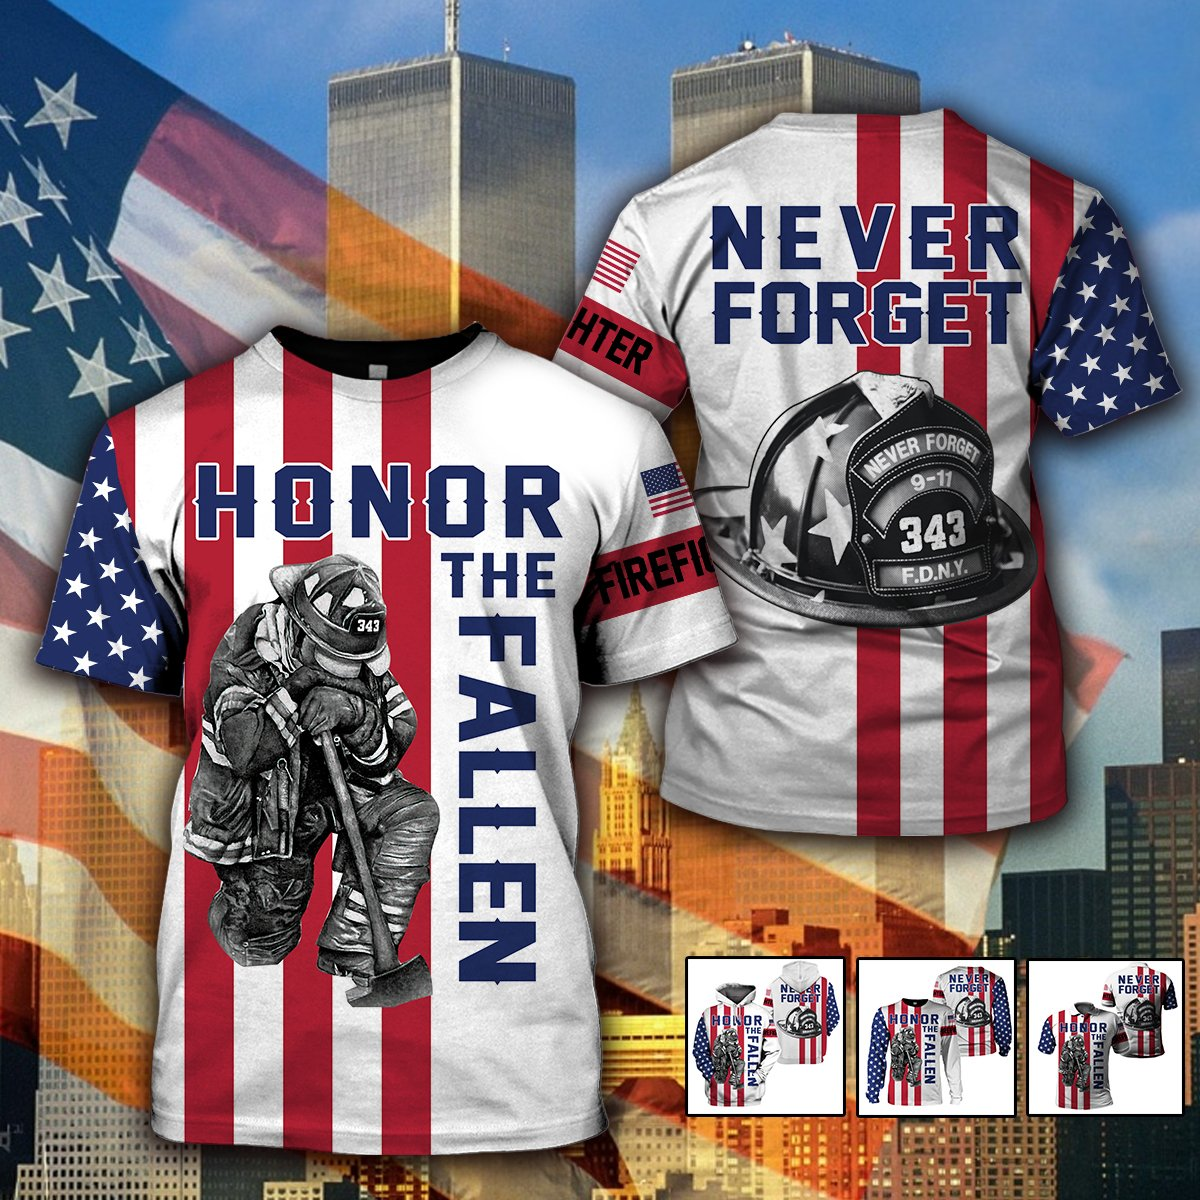 3D Firefighter Apparels- 343 never forget - 4zOutfitters Merchandise